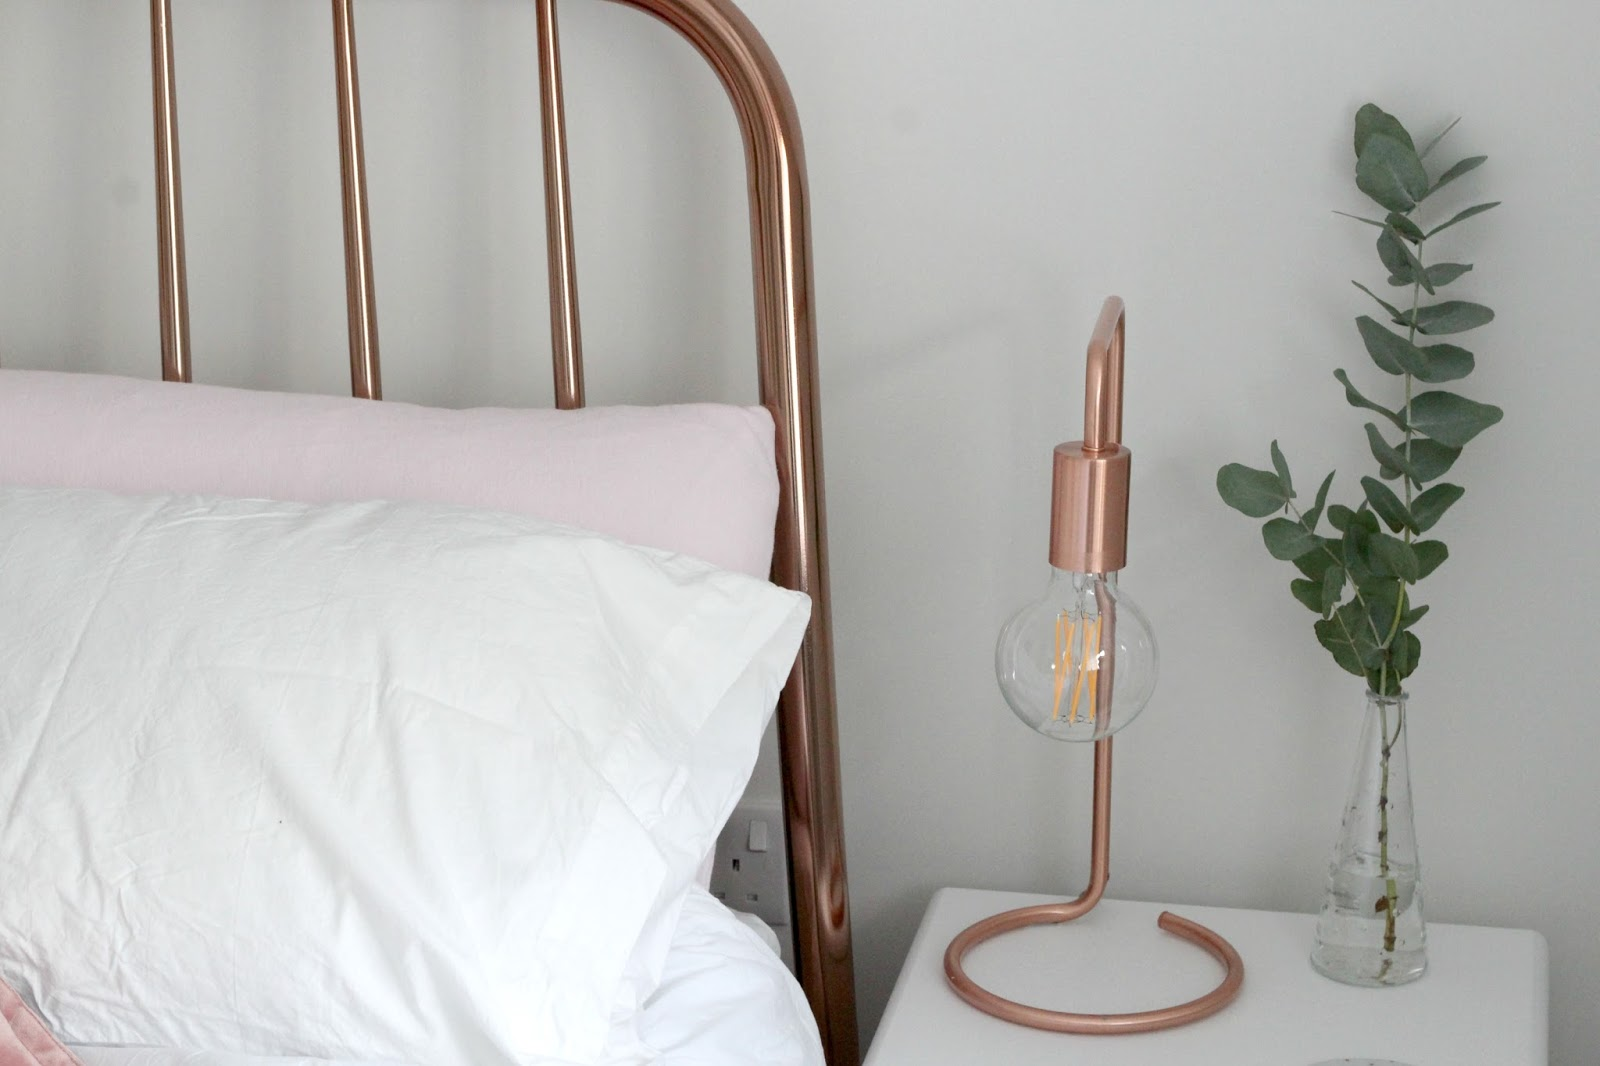 copper-table-lamp-oliver-bonas